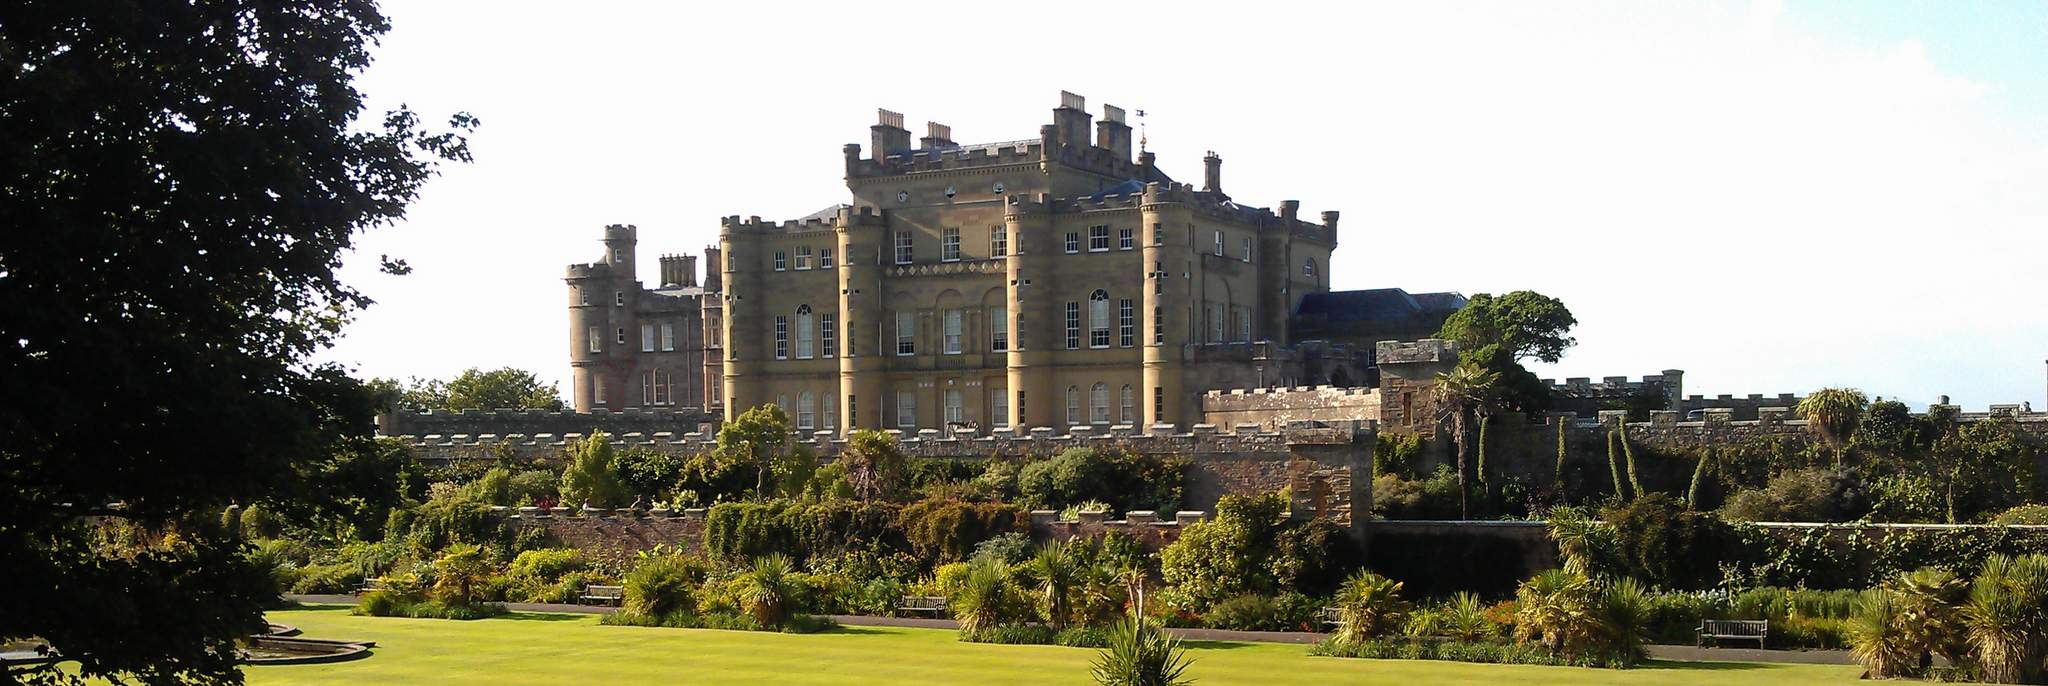 Castles in Ayrshire and Arran